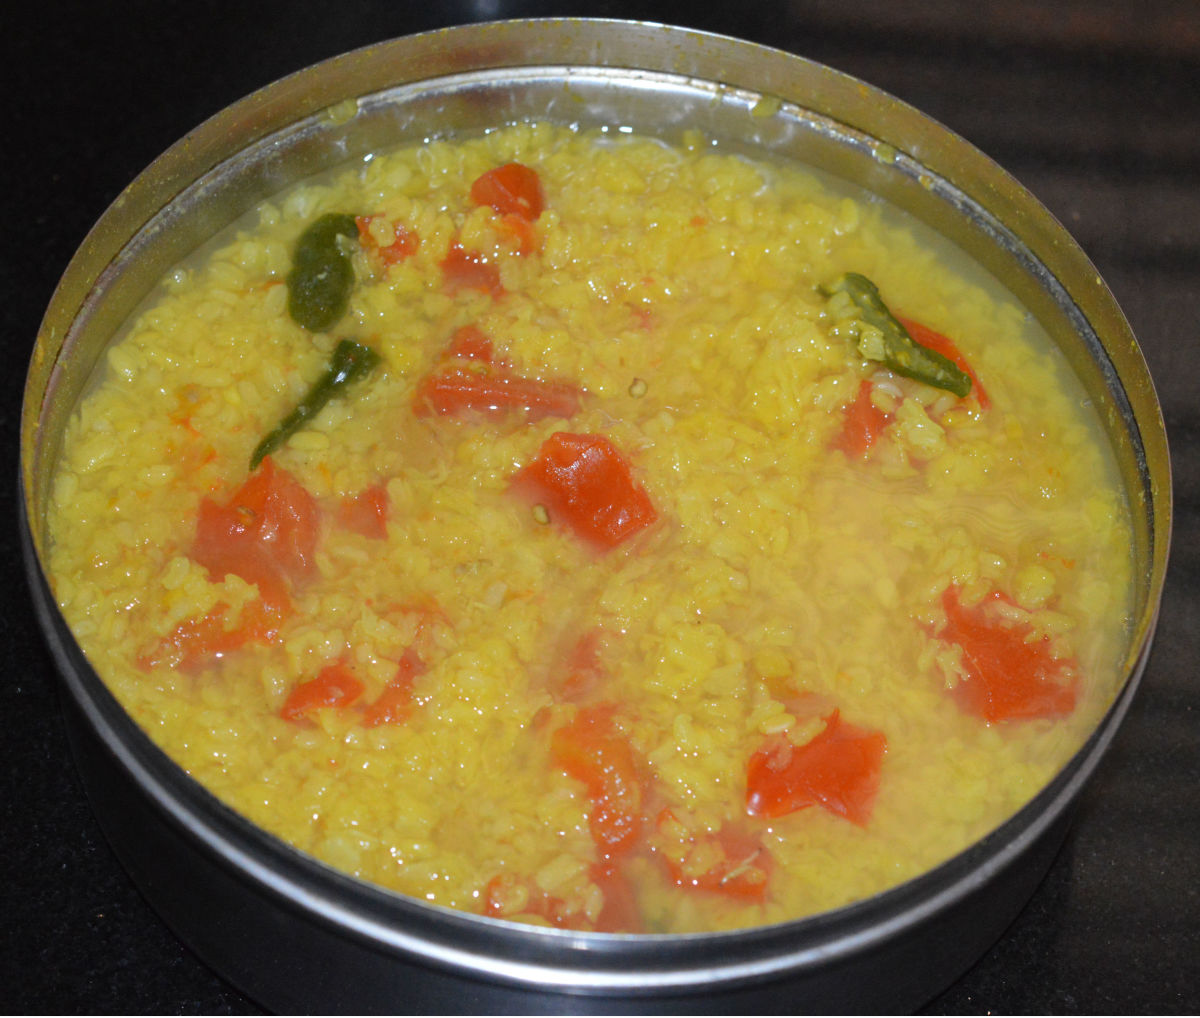 Cooked moong dal mixture